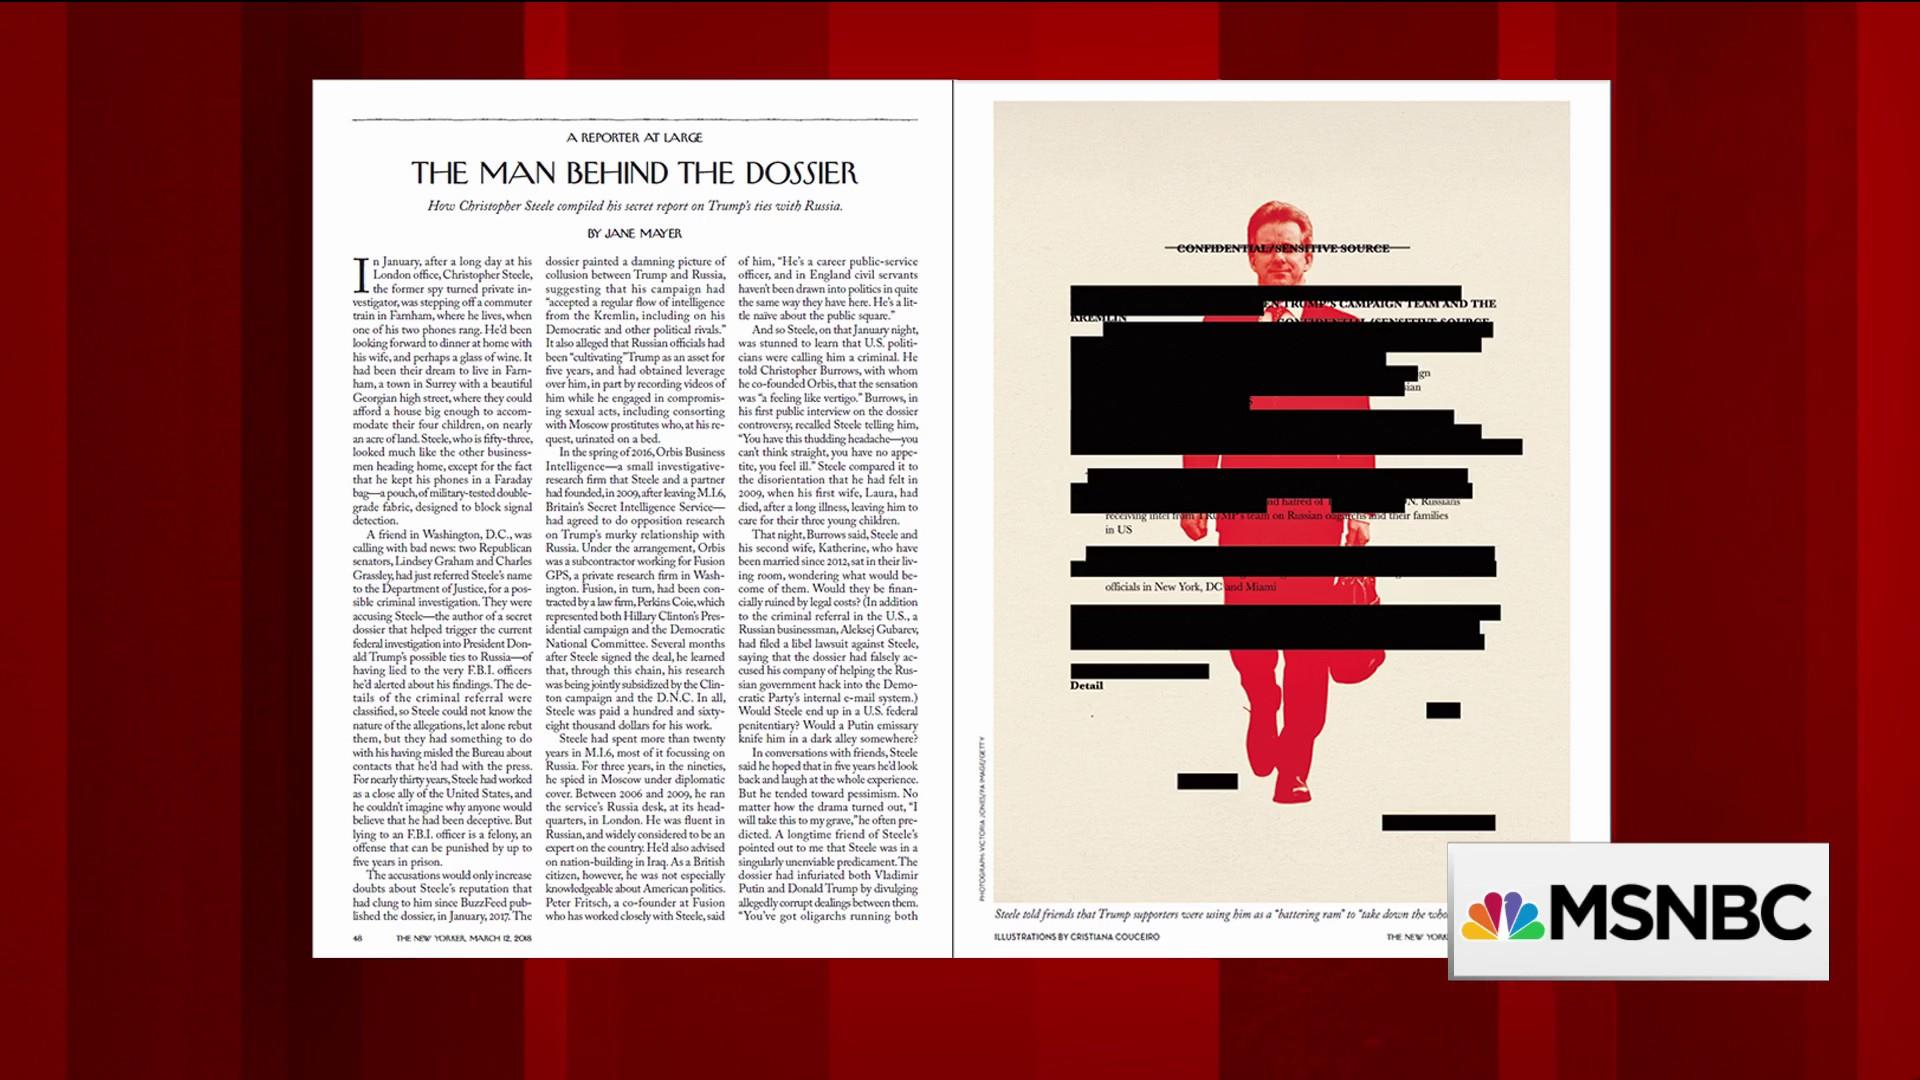 New Yorker digs into the man behind the dossier